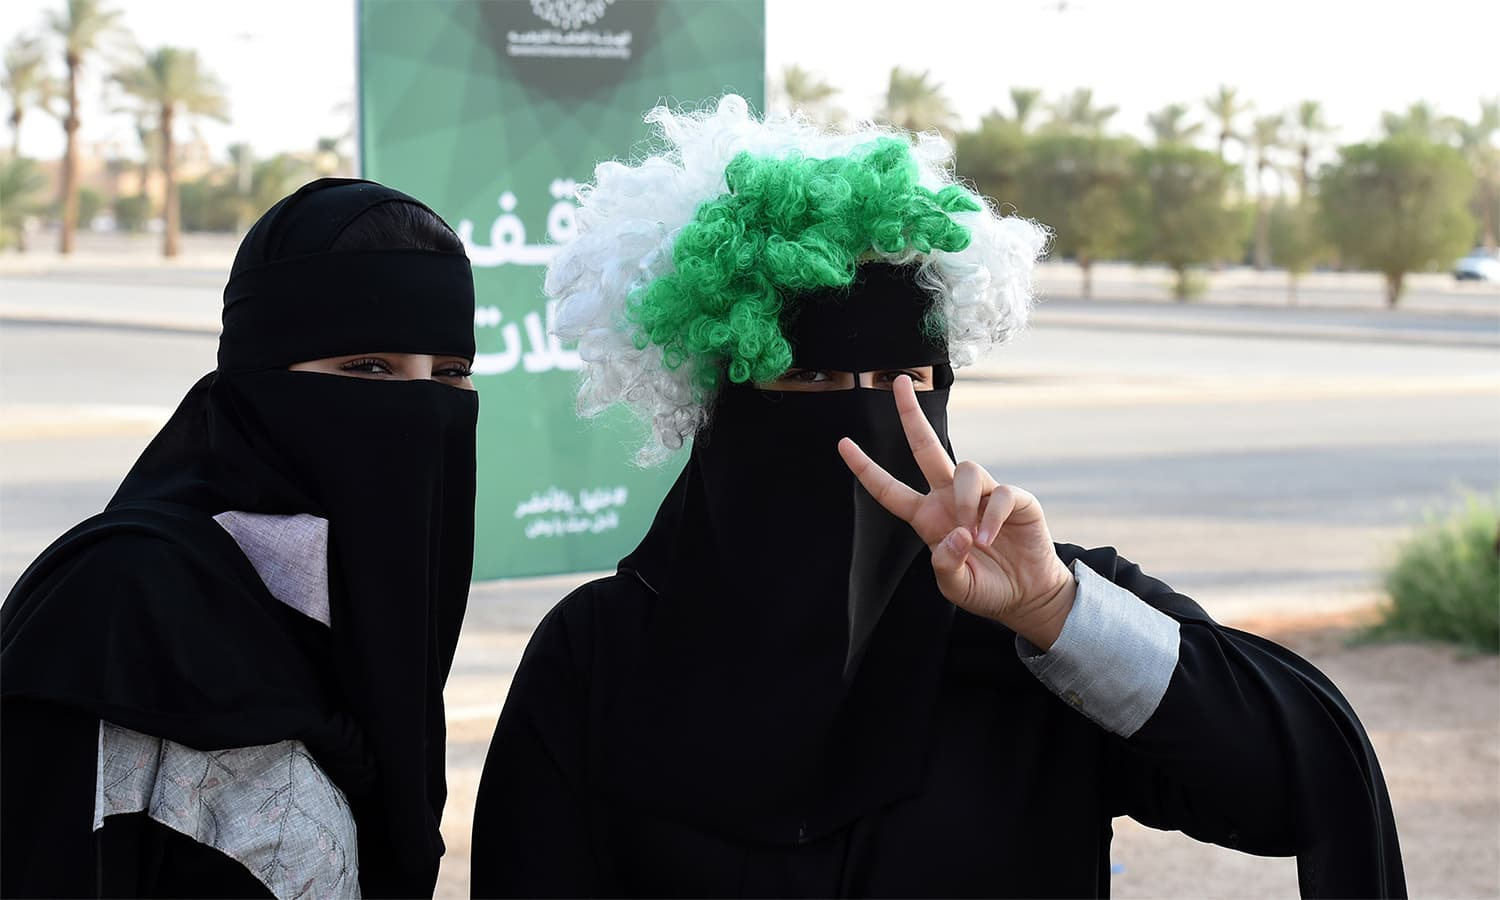 A Saudi woman flashes the victory gesture while wearing a coloured wig above her head-dress, as she arrives outside a stadium to attend an event in the capital Riyadh. — AFP